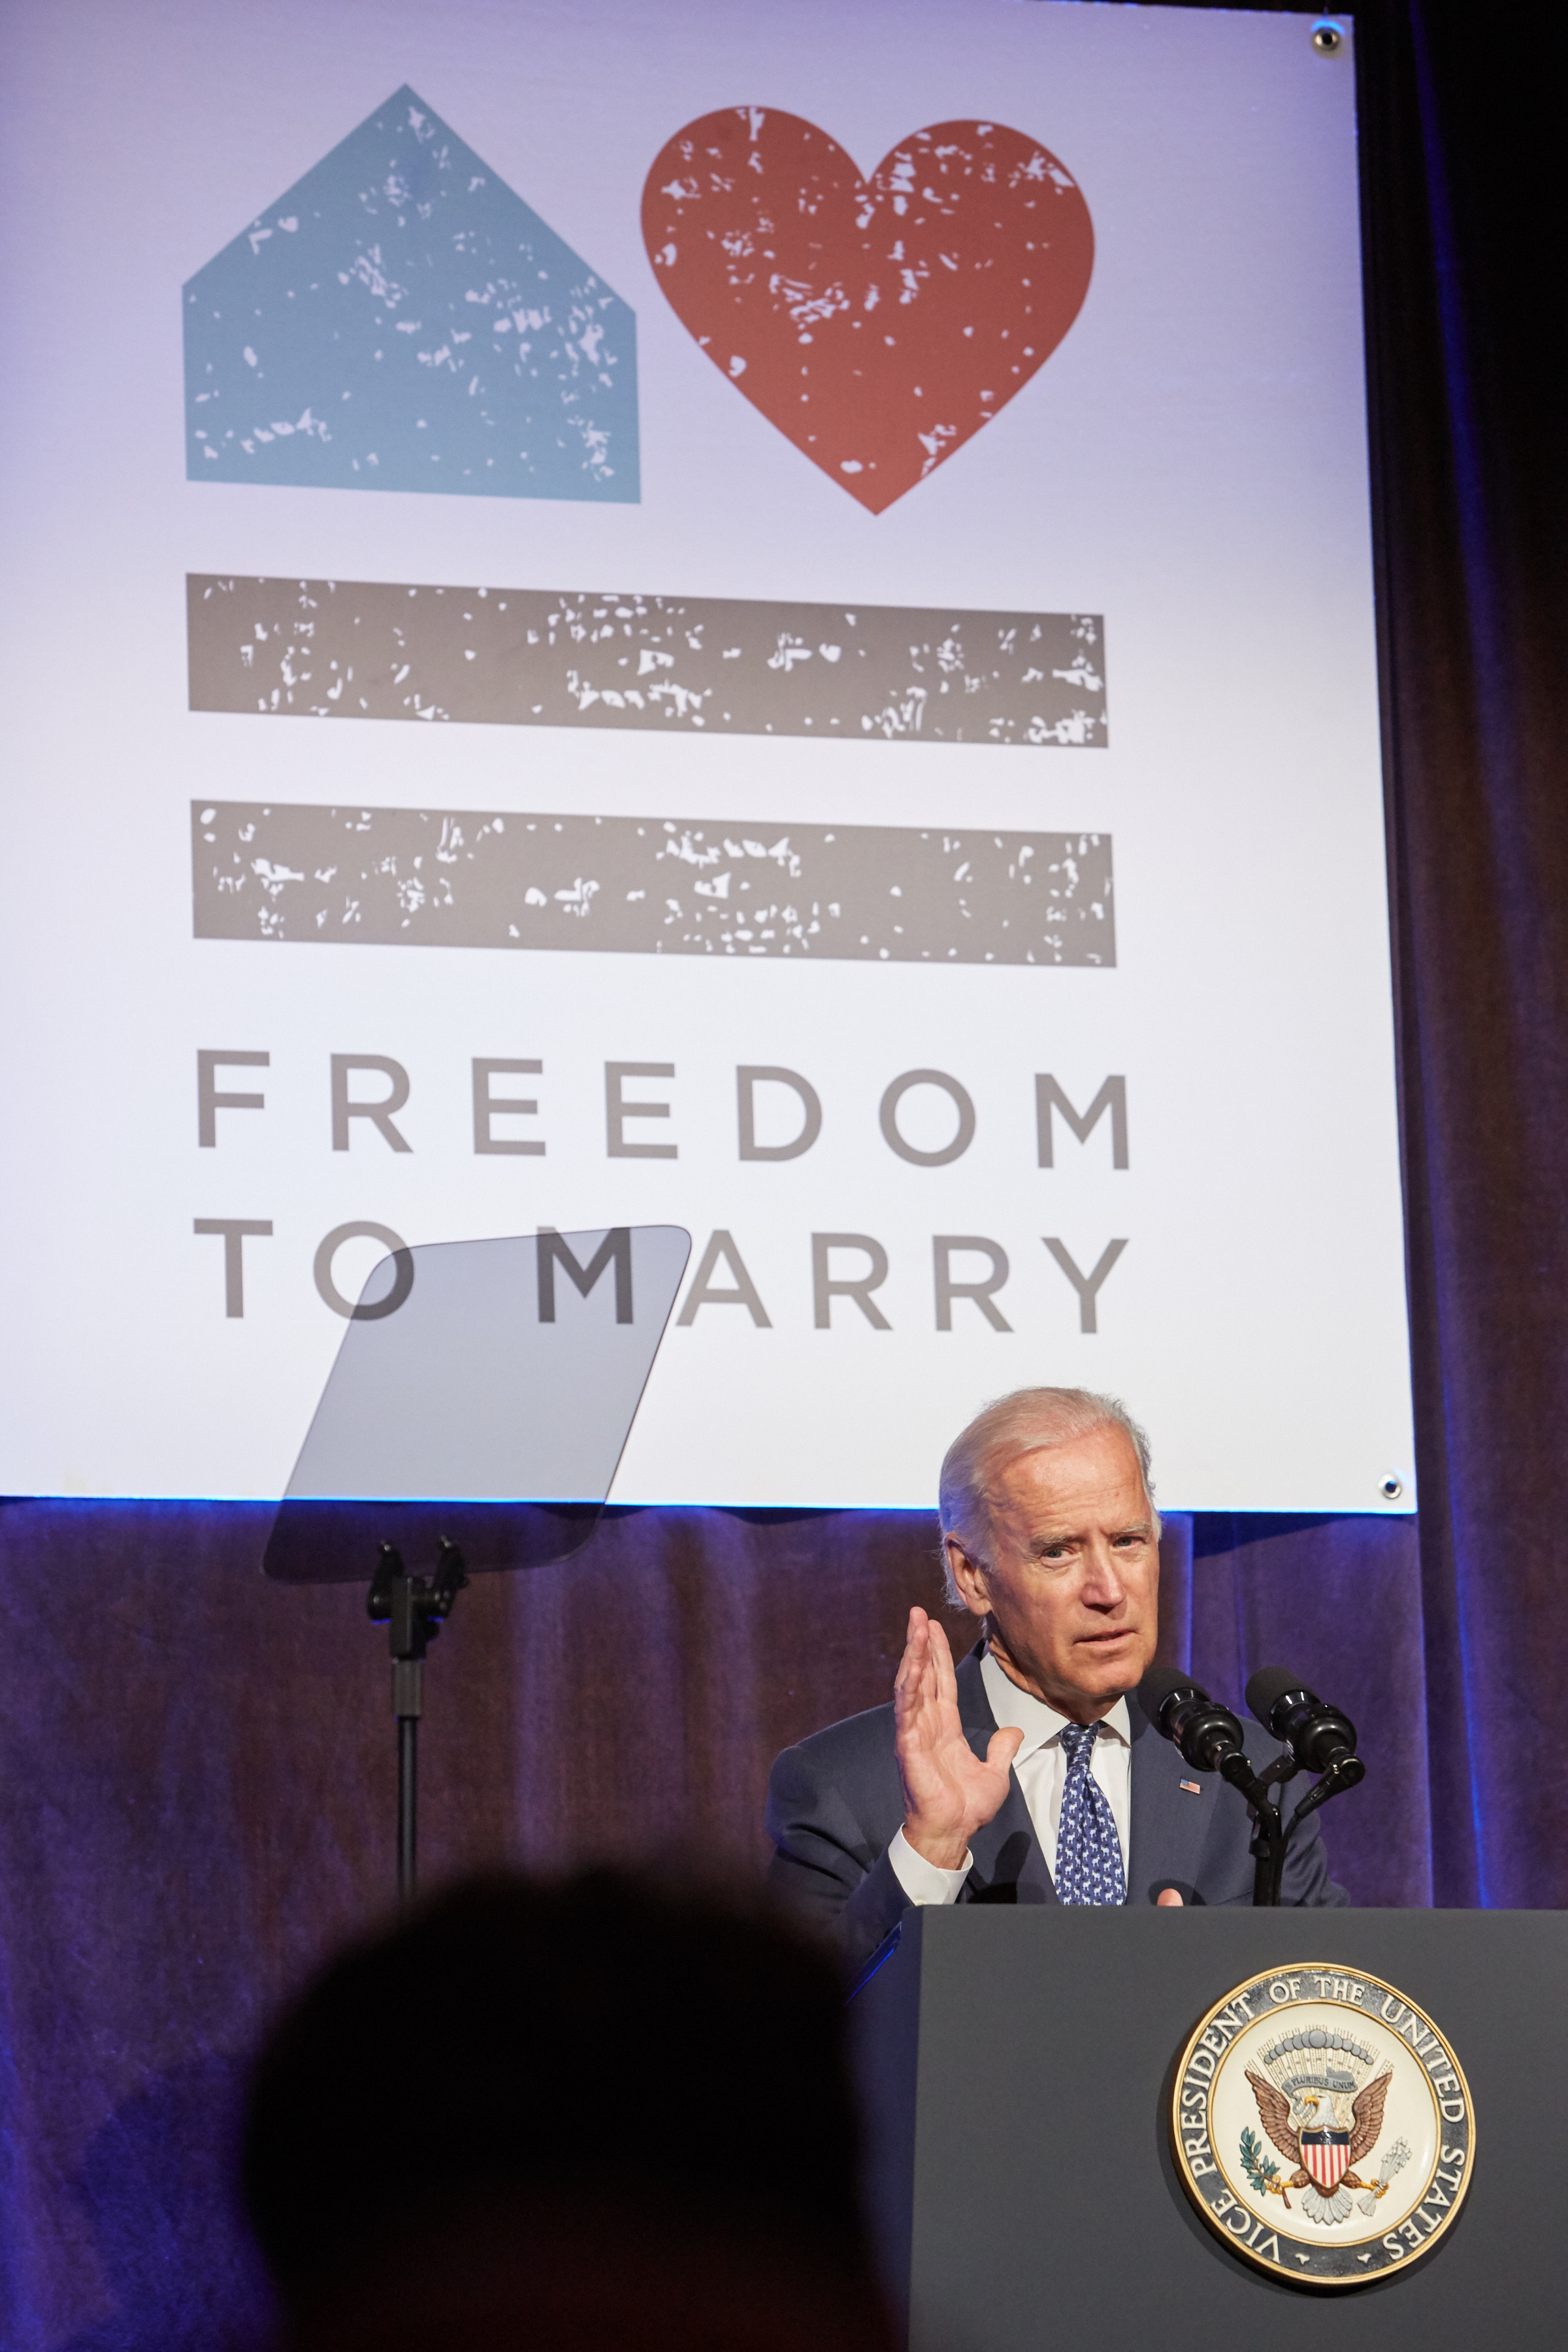 Vice President Biden spoke about the watershed Supreme Court victory for marriage at Freedom to Marry's Celebration Event on July 9, 2015.